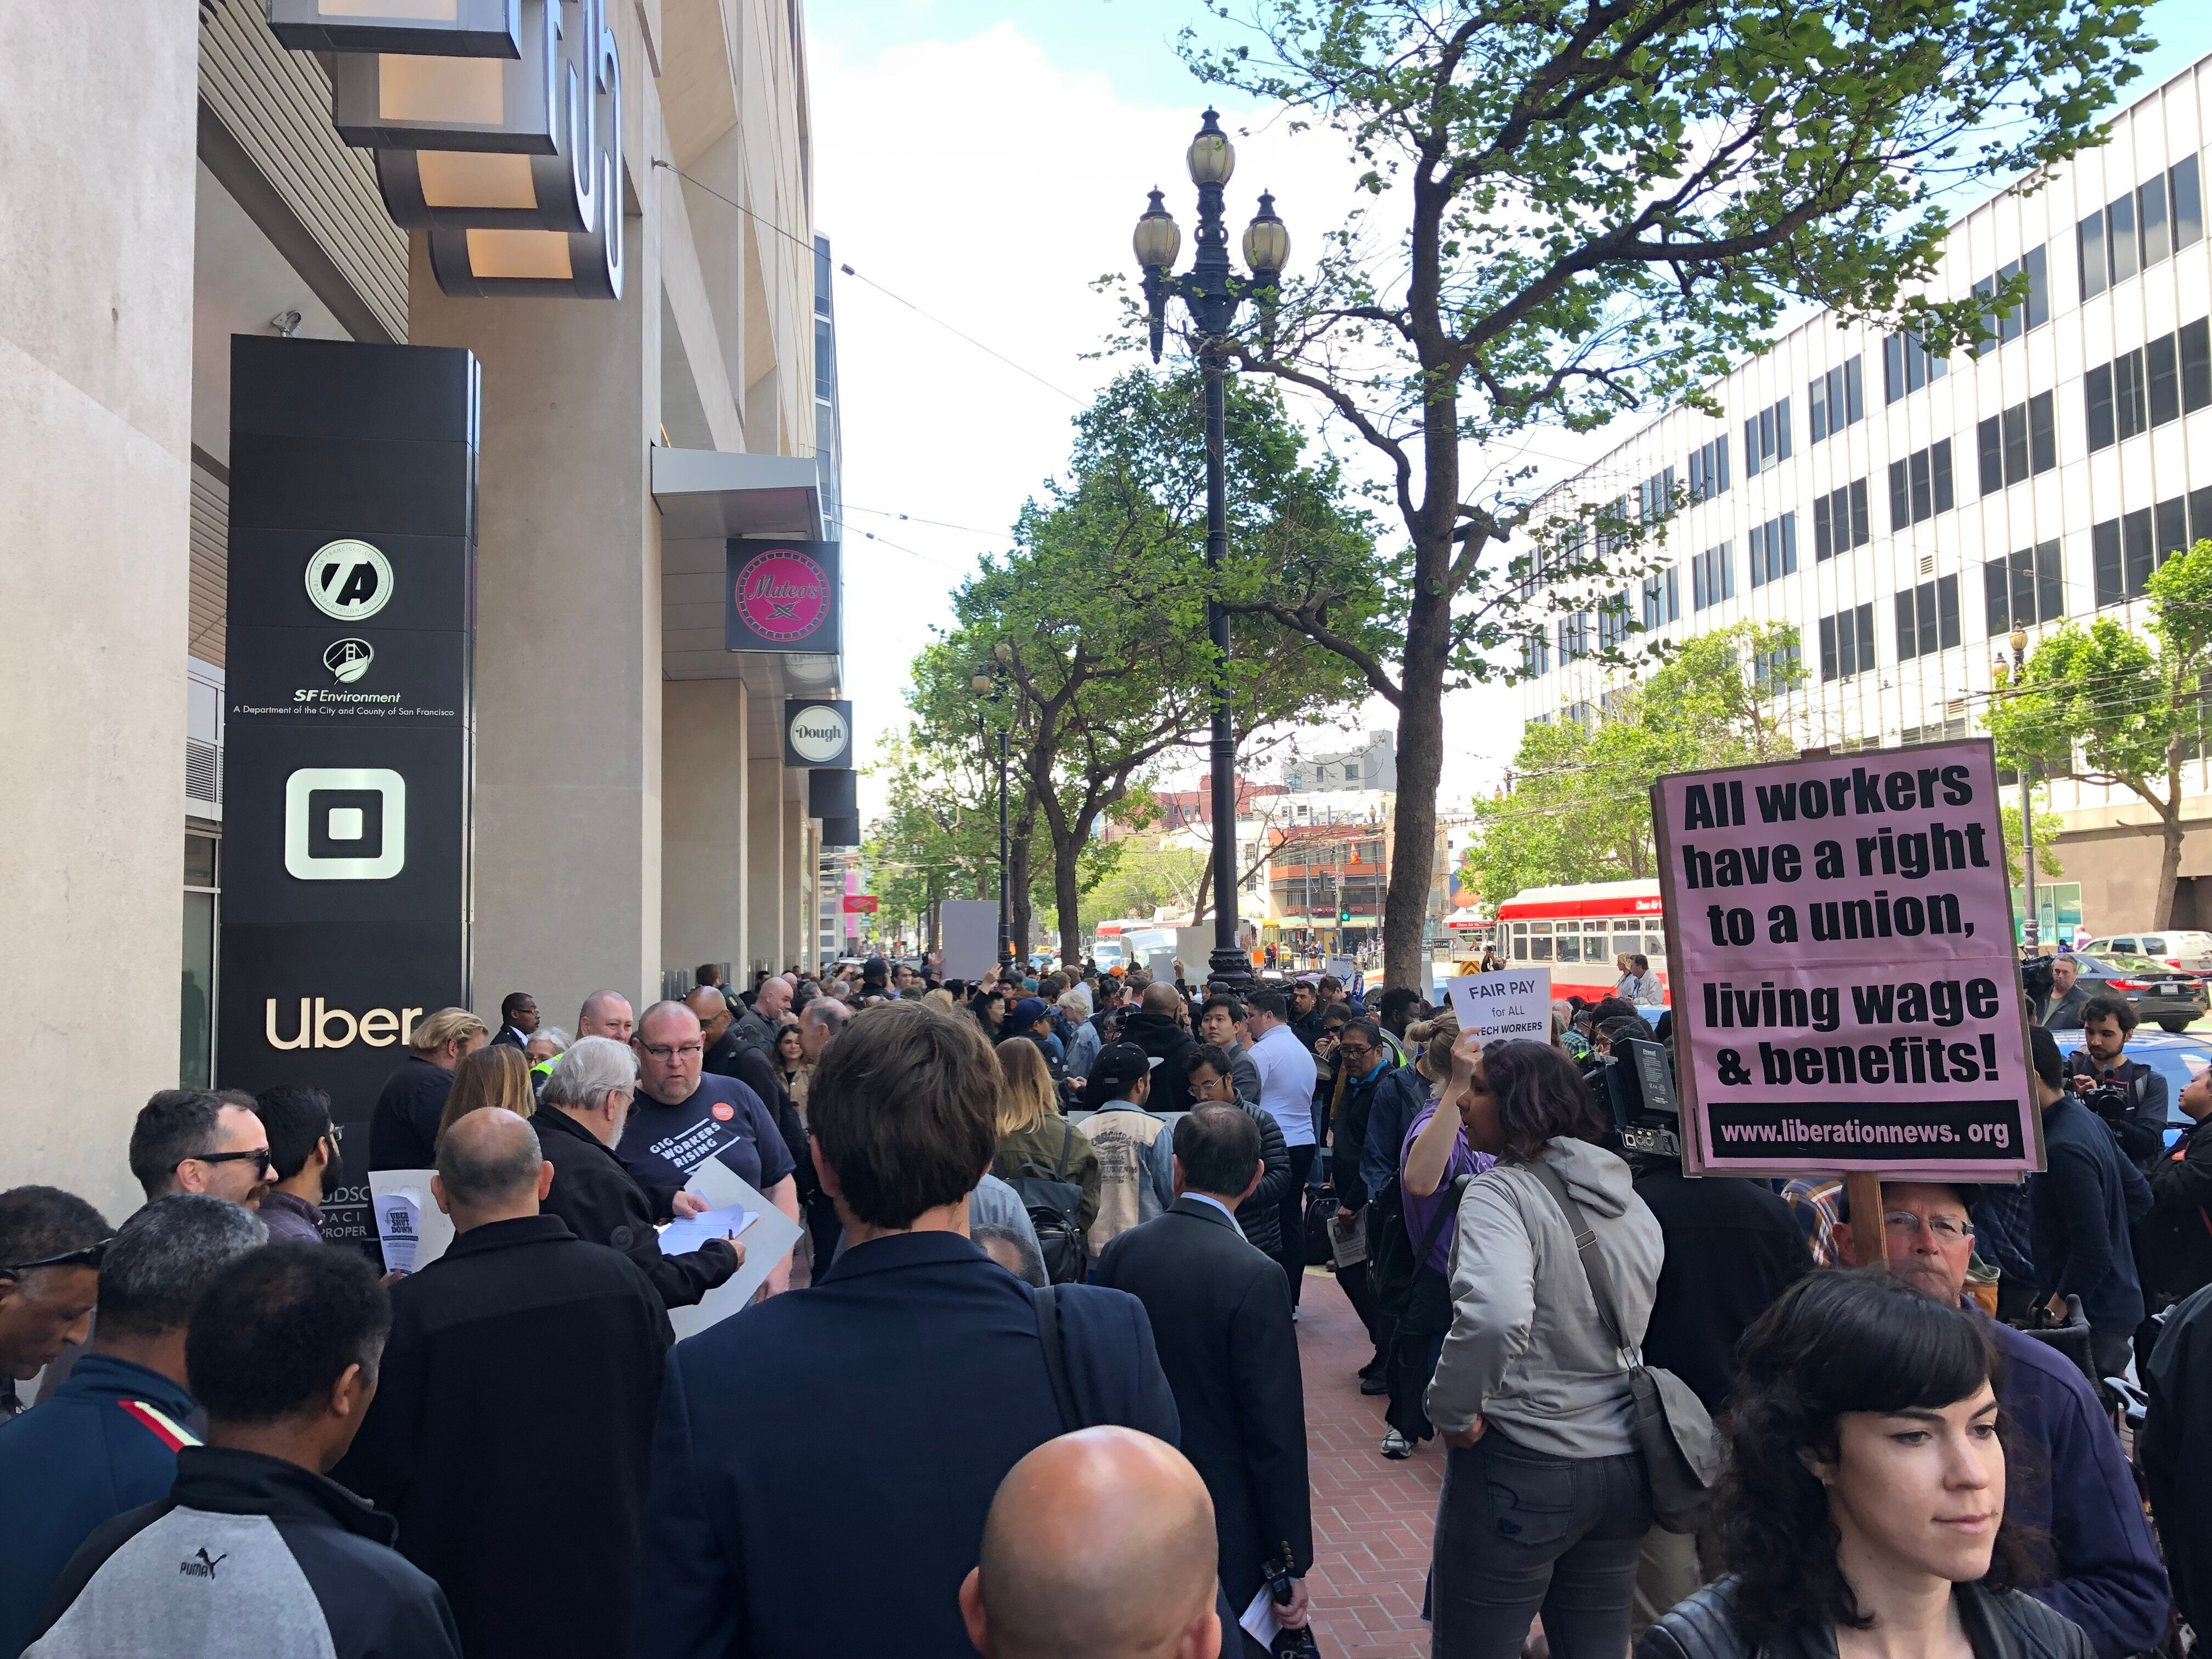 Drivers strike outside Uber's offices in San Francisco - May 8, 2019